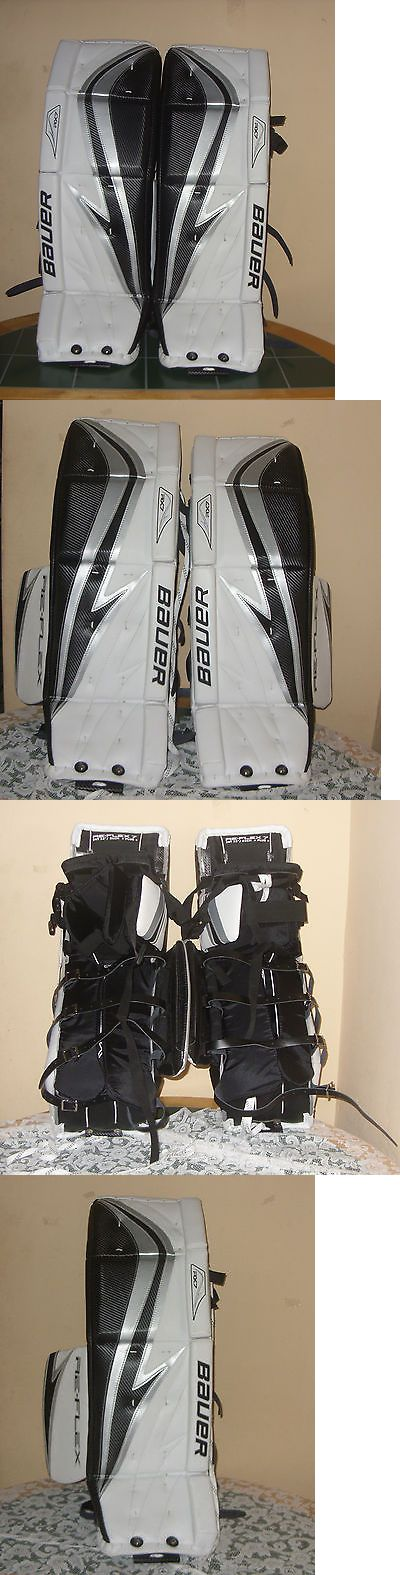 Leg Pads 79764: Bauer Rx7 Re-Flex Goalie Pad Int. 32/81Cm Ice Hockey Goalie Pads -> BUY IT NOW ONLY: $599.99 on eBay!